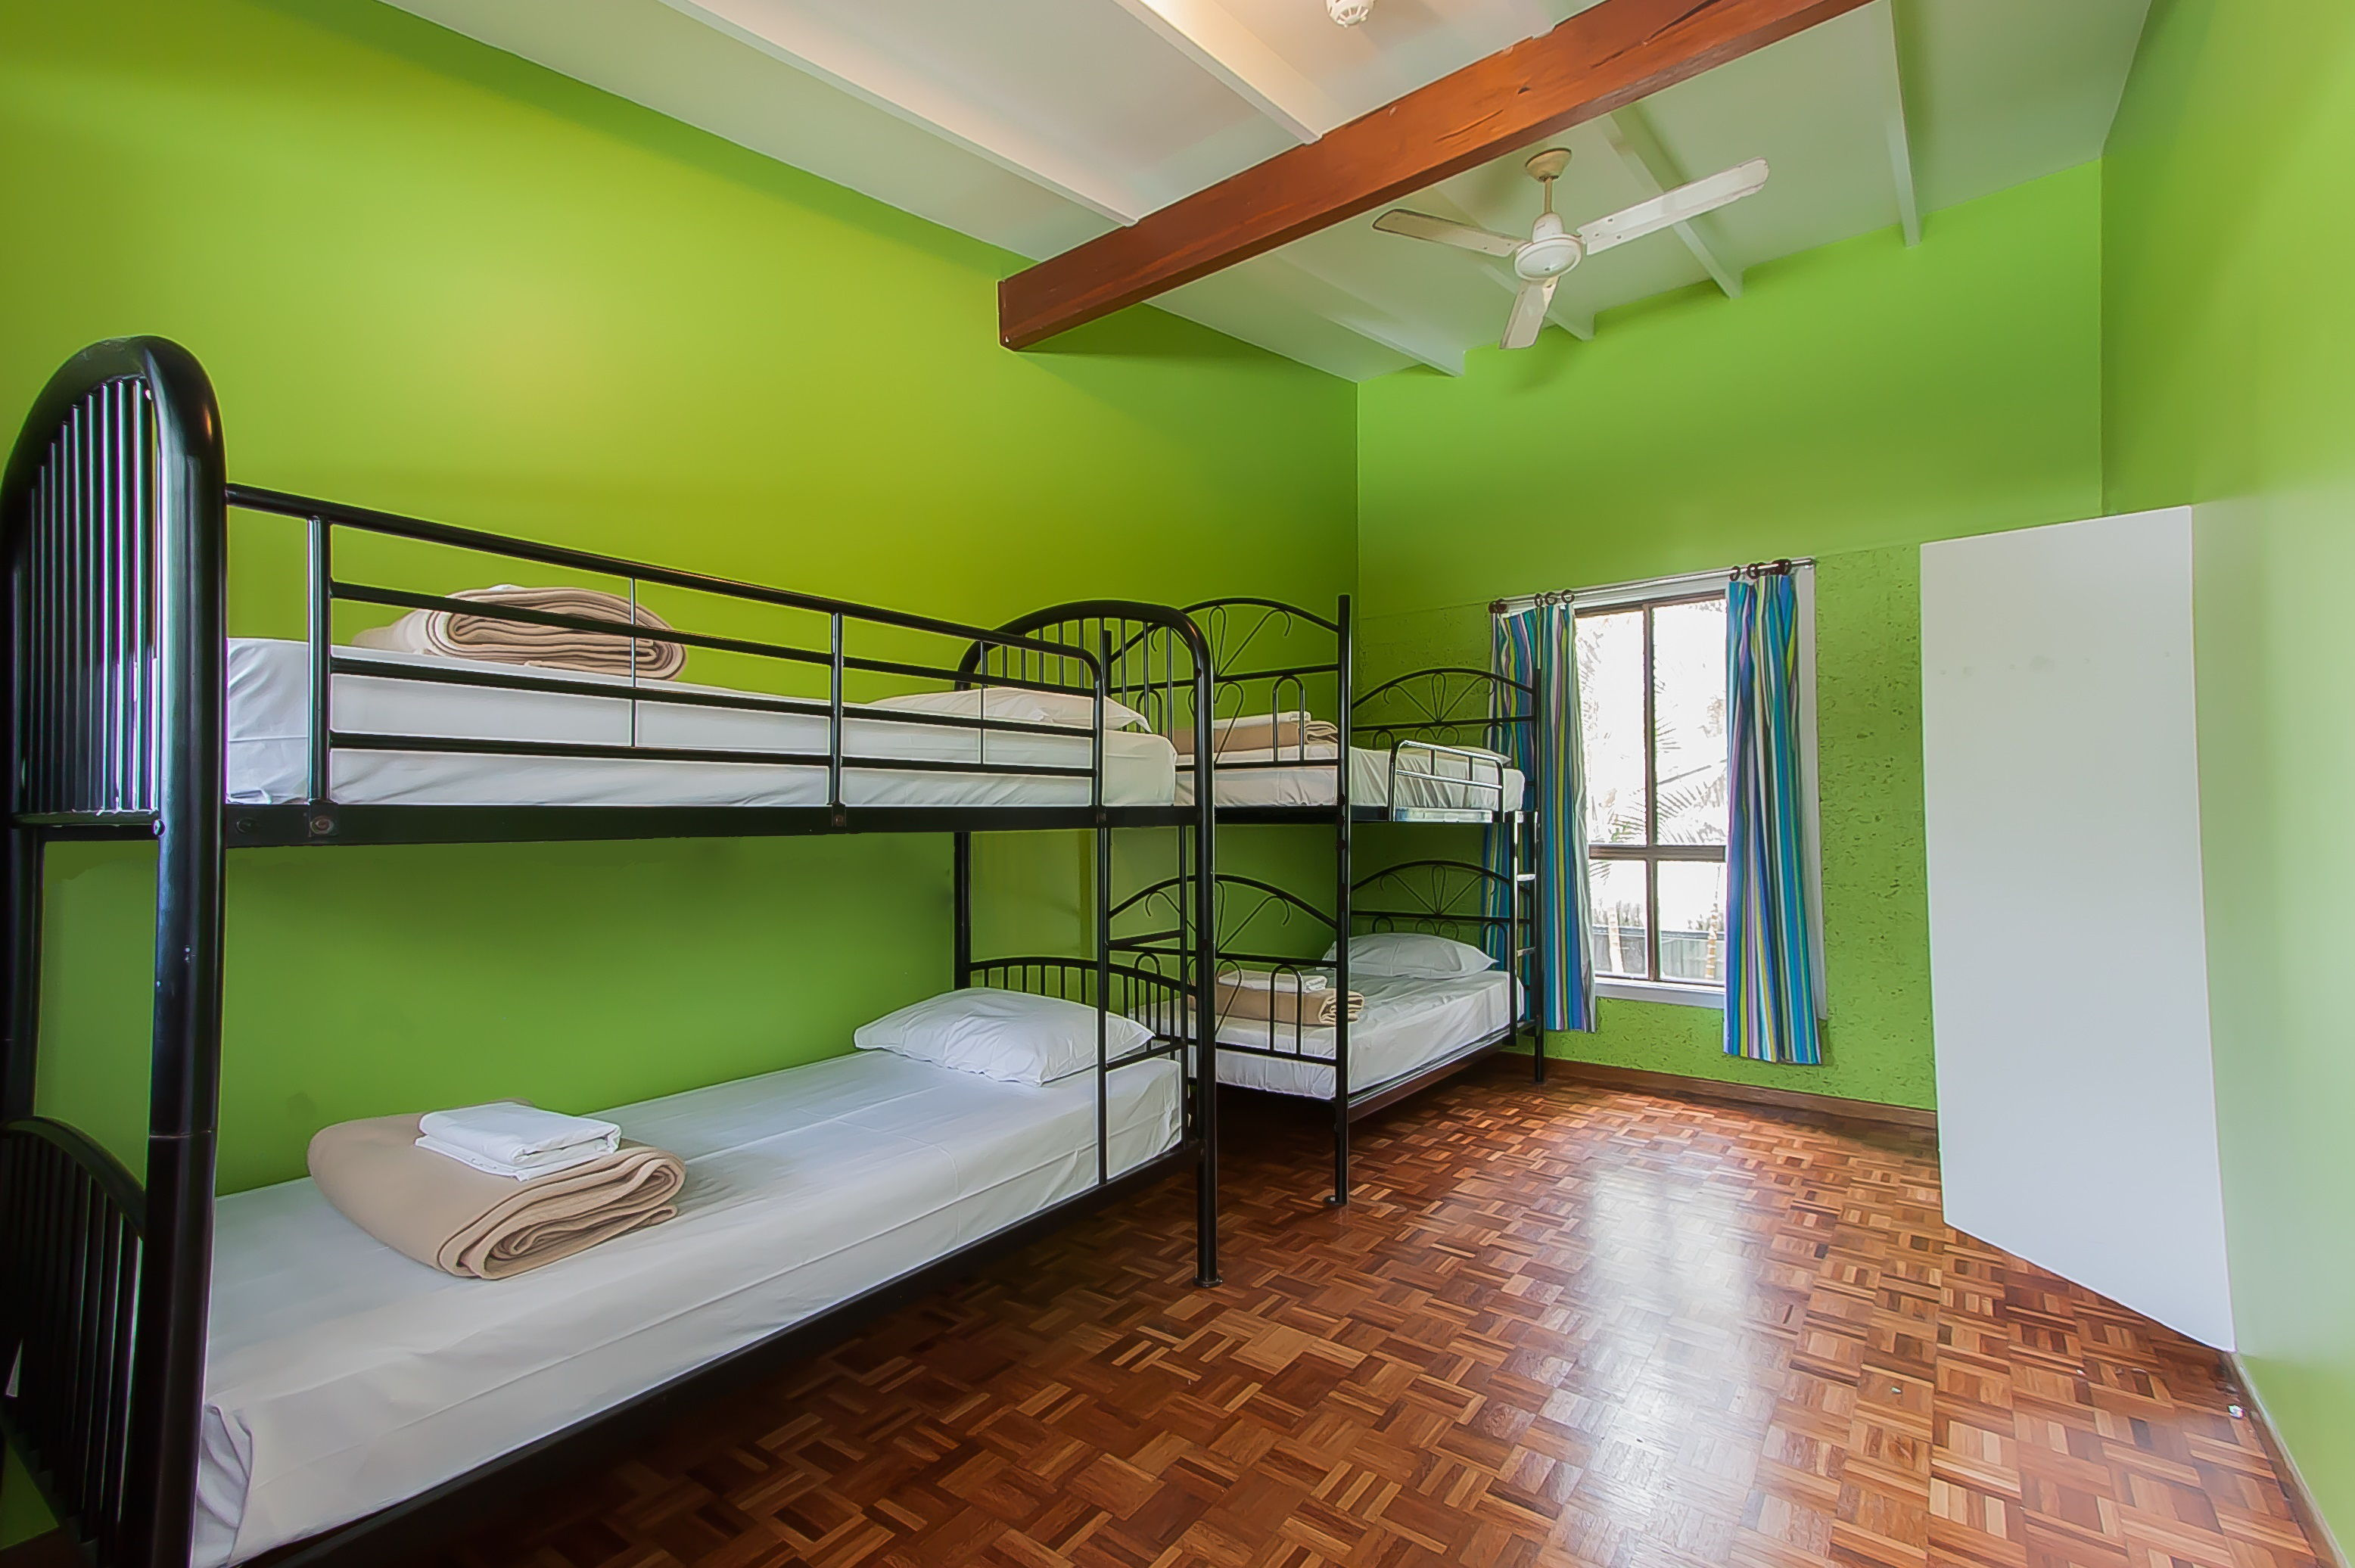 4 BED SHARE ROOM